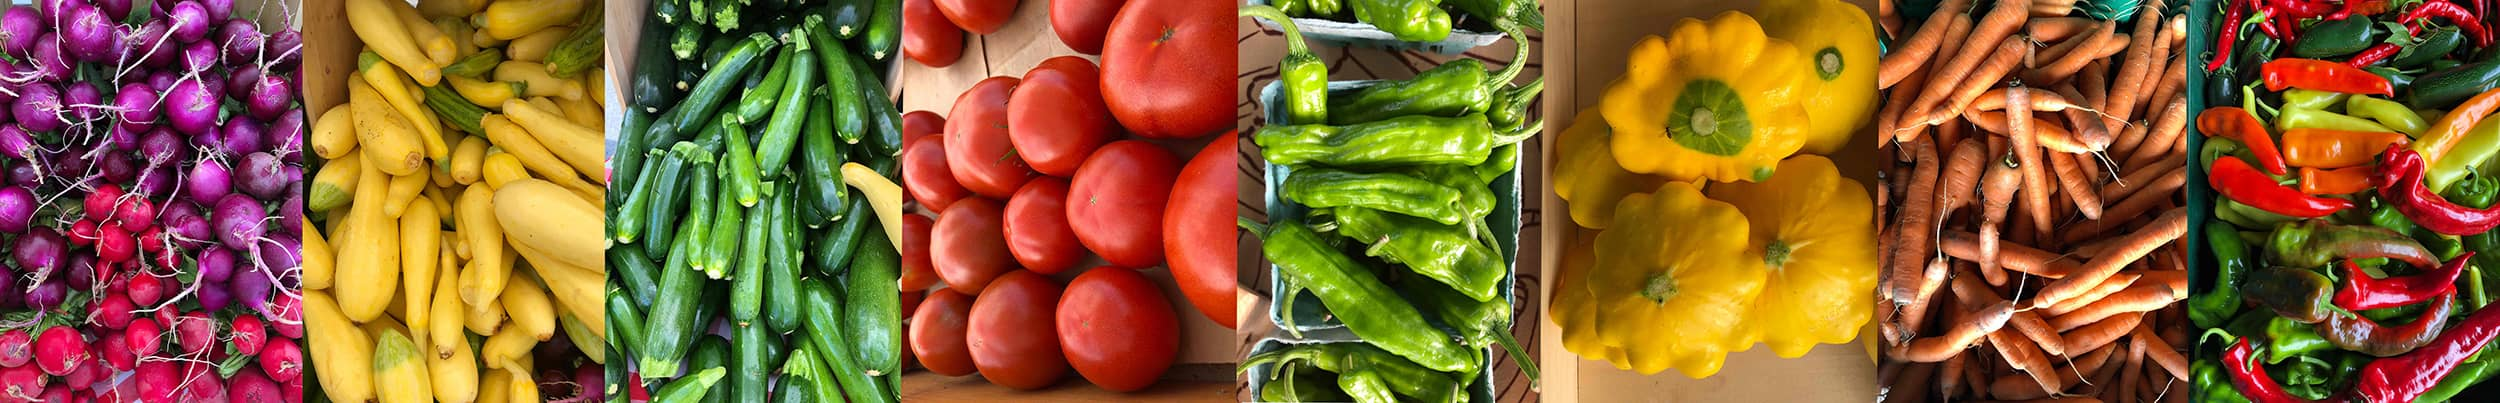 collage of fresh vegetables.